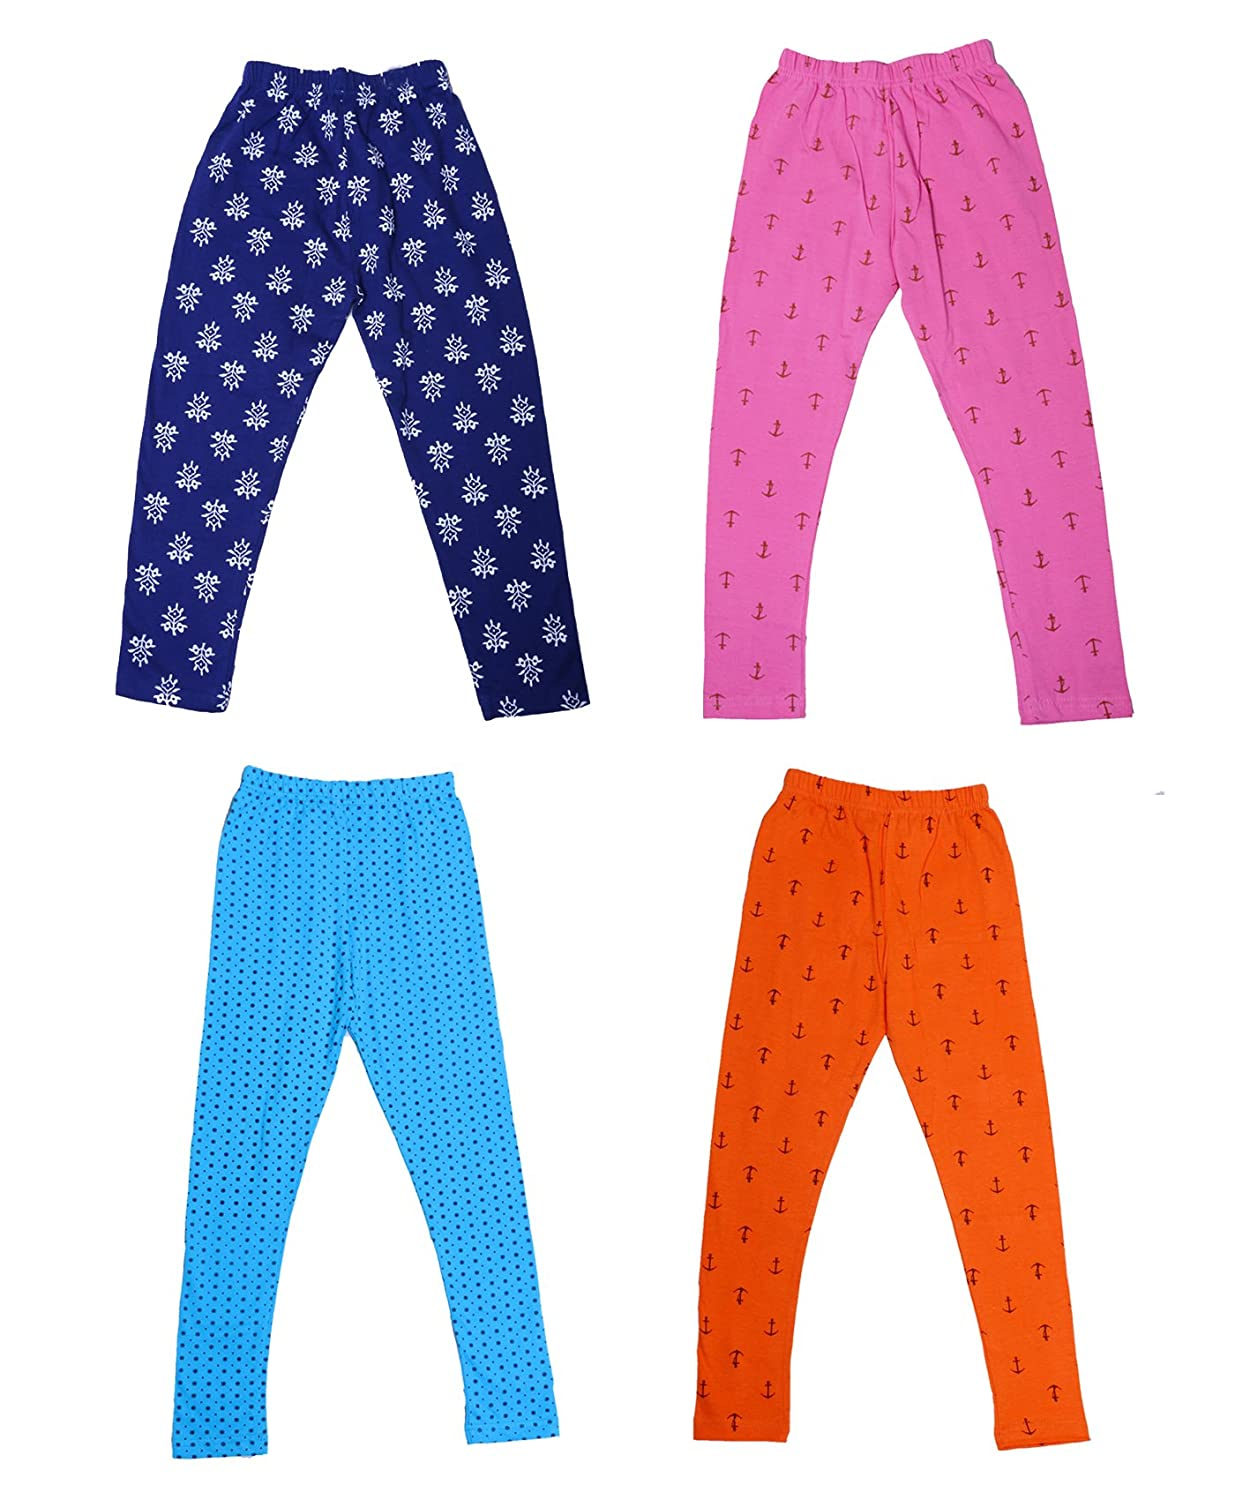 Indistar Girls Super Soft and Stylish Cotton Printed Legging Pants Pack of 5